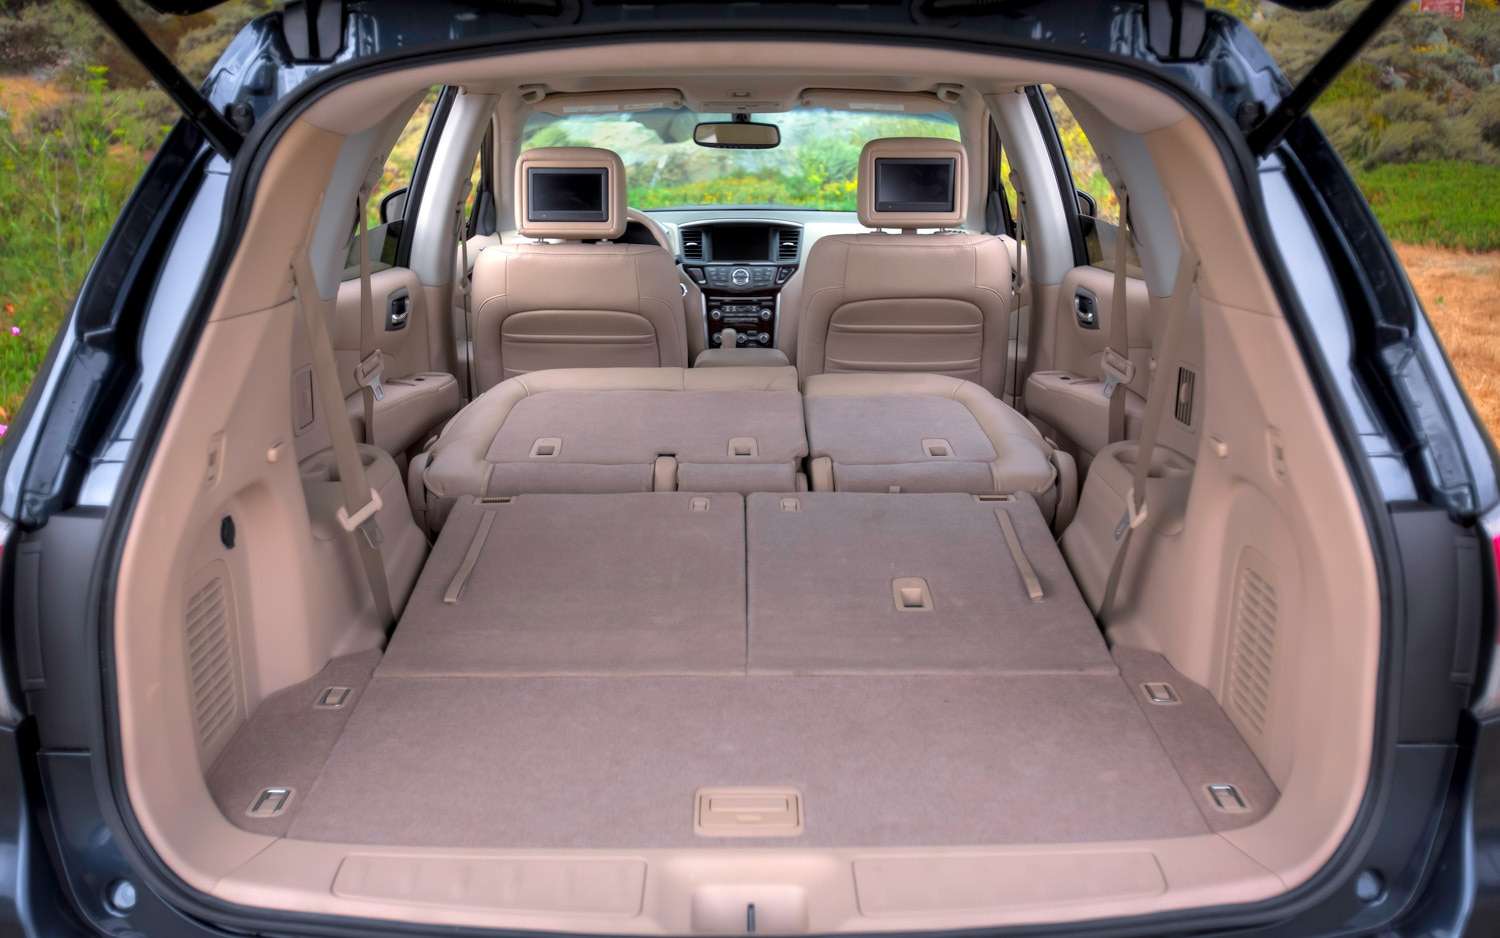 2013 Nissan Pathfinder Rear Cargo Seats Fully Folded